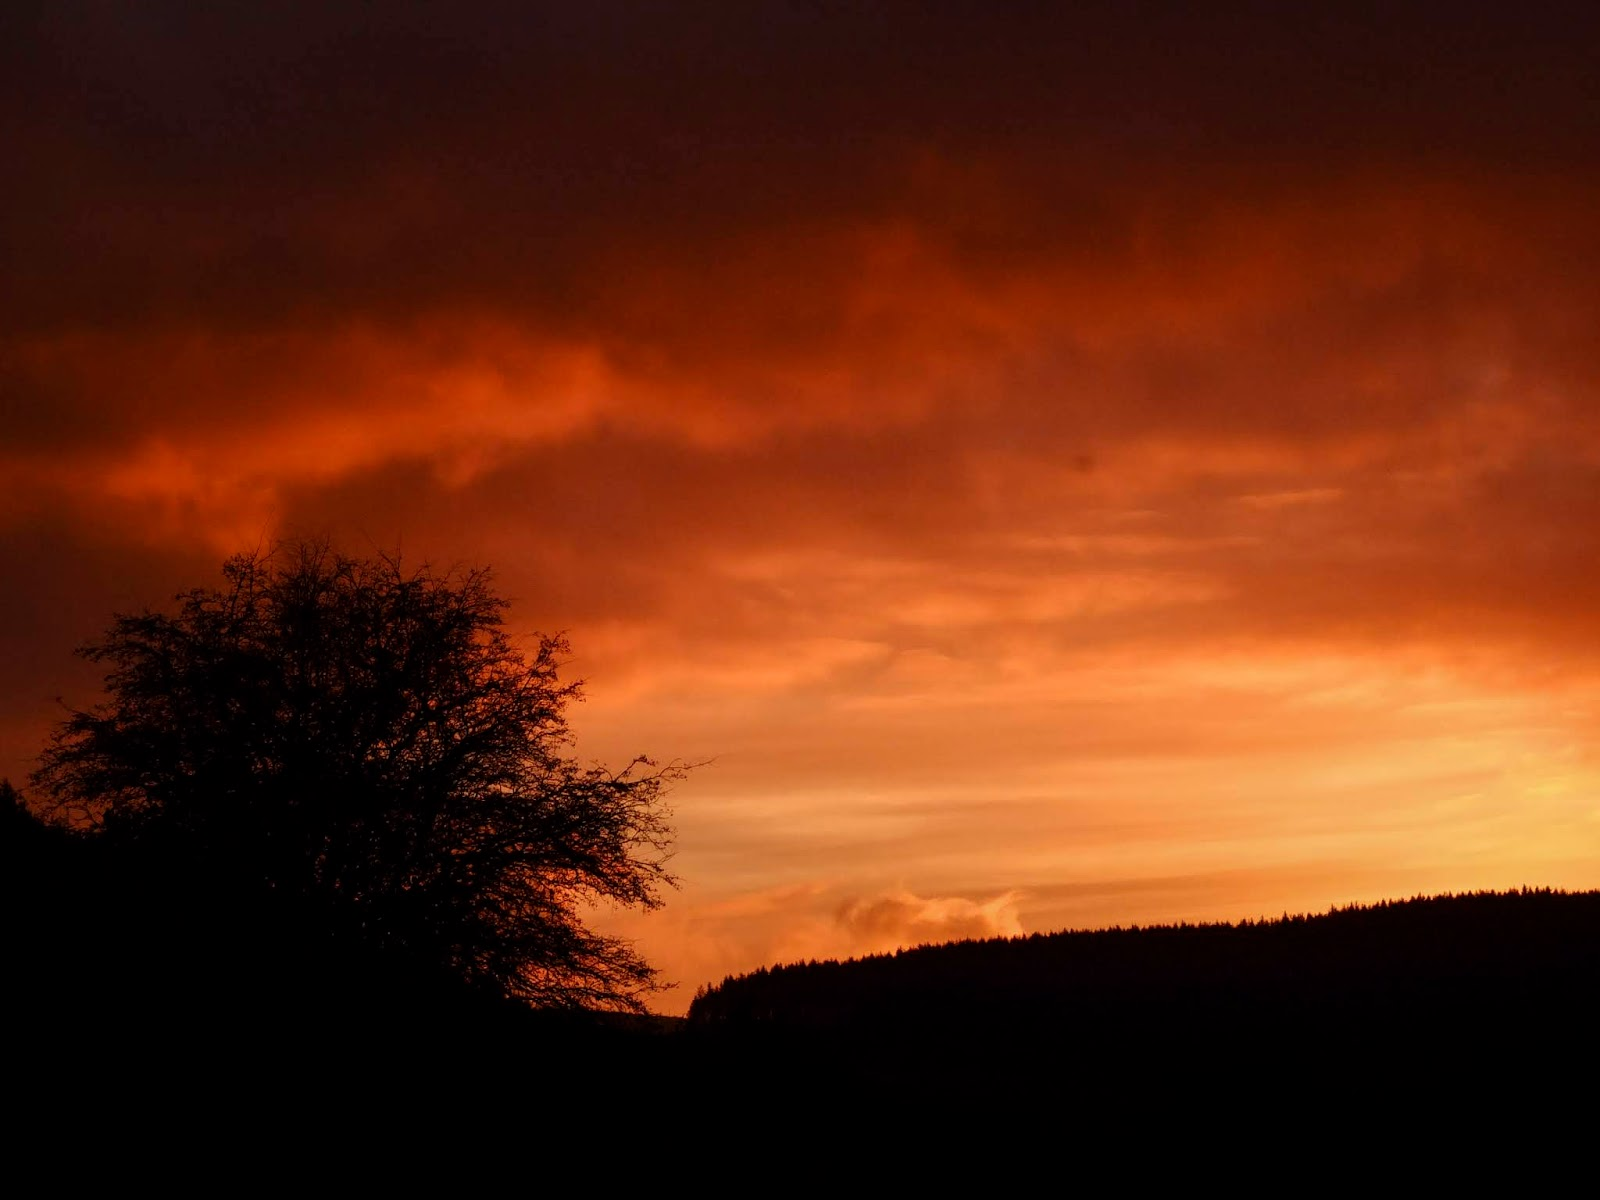 An orange sunset sky in the mountains in North Cork.